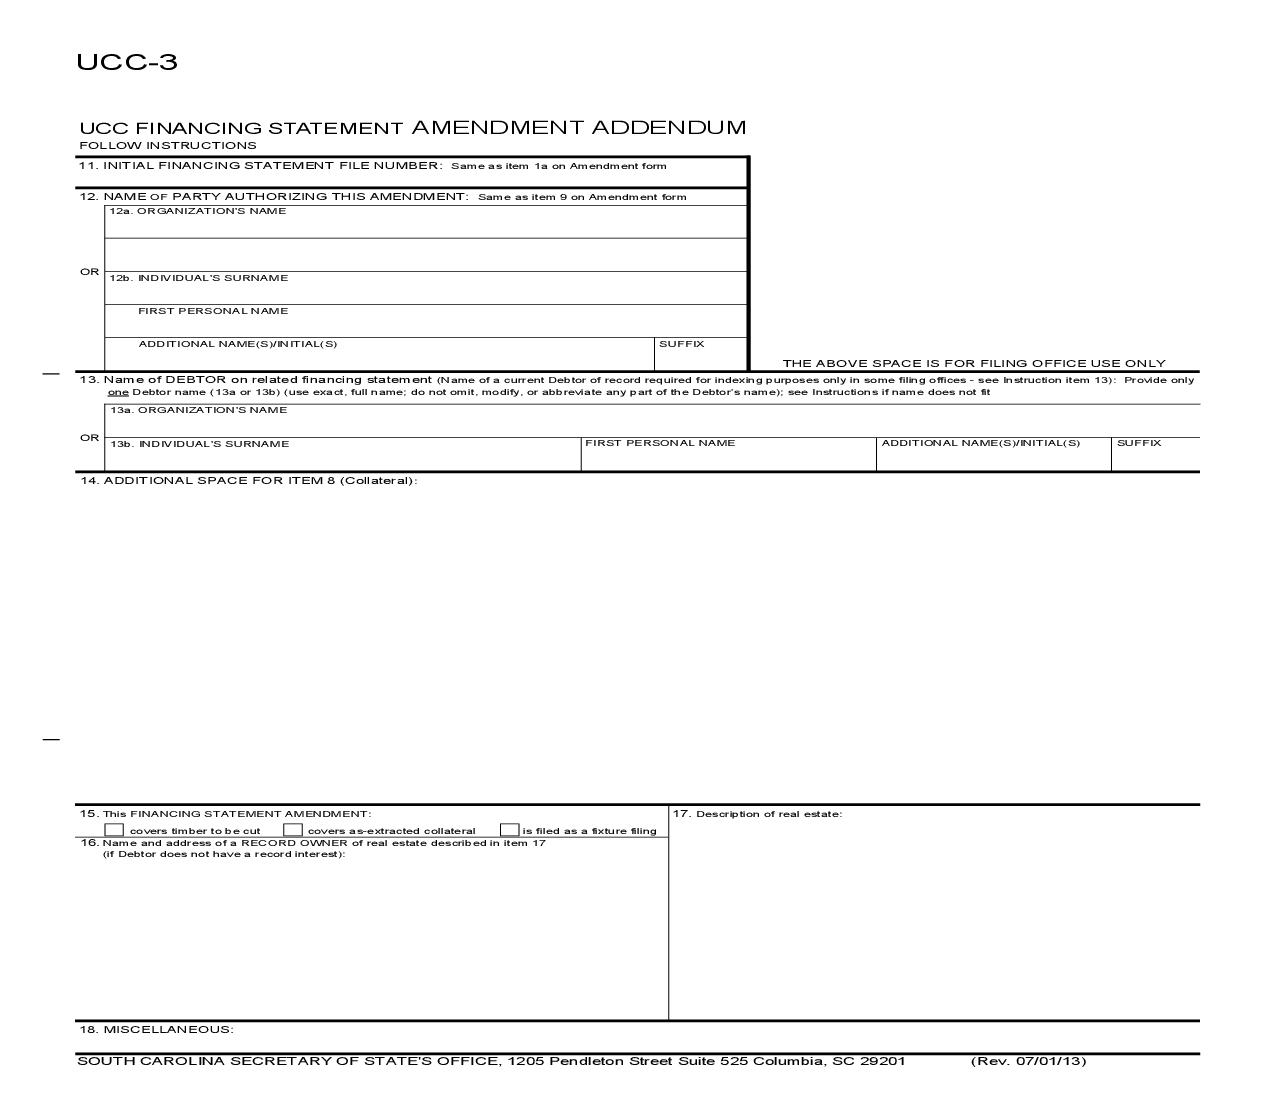 UCC-3ad Financing Statement Amendment Addendum {UCC-3ad} | Pdf Fpdf Doc Docx | South Carolina